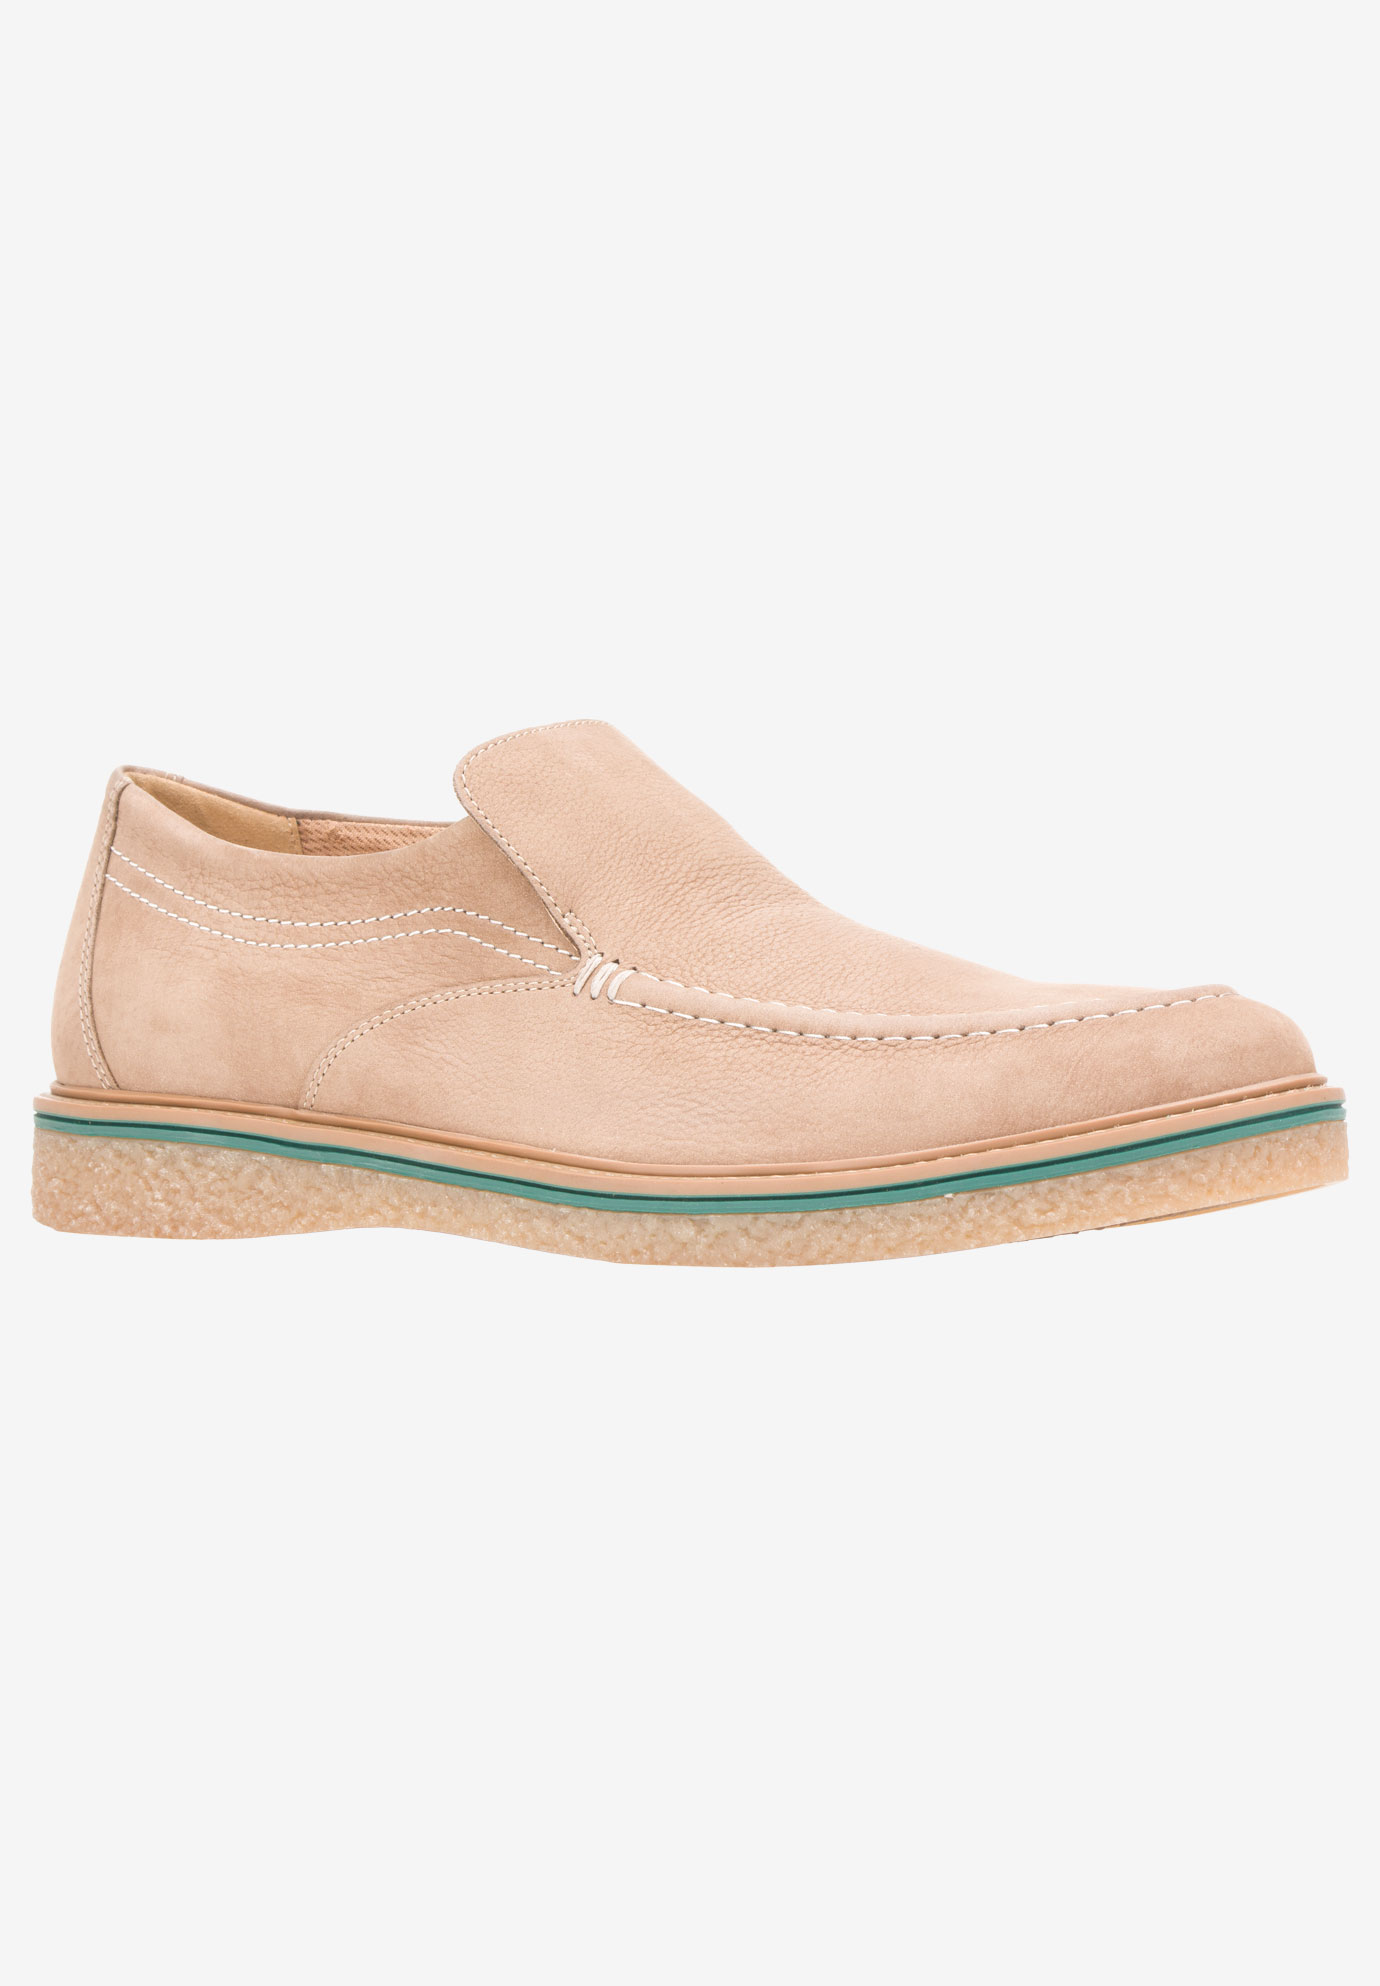 Hush Puppies® Jaden Slip-On Loafers,